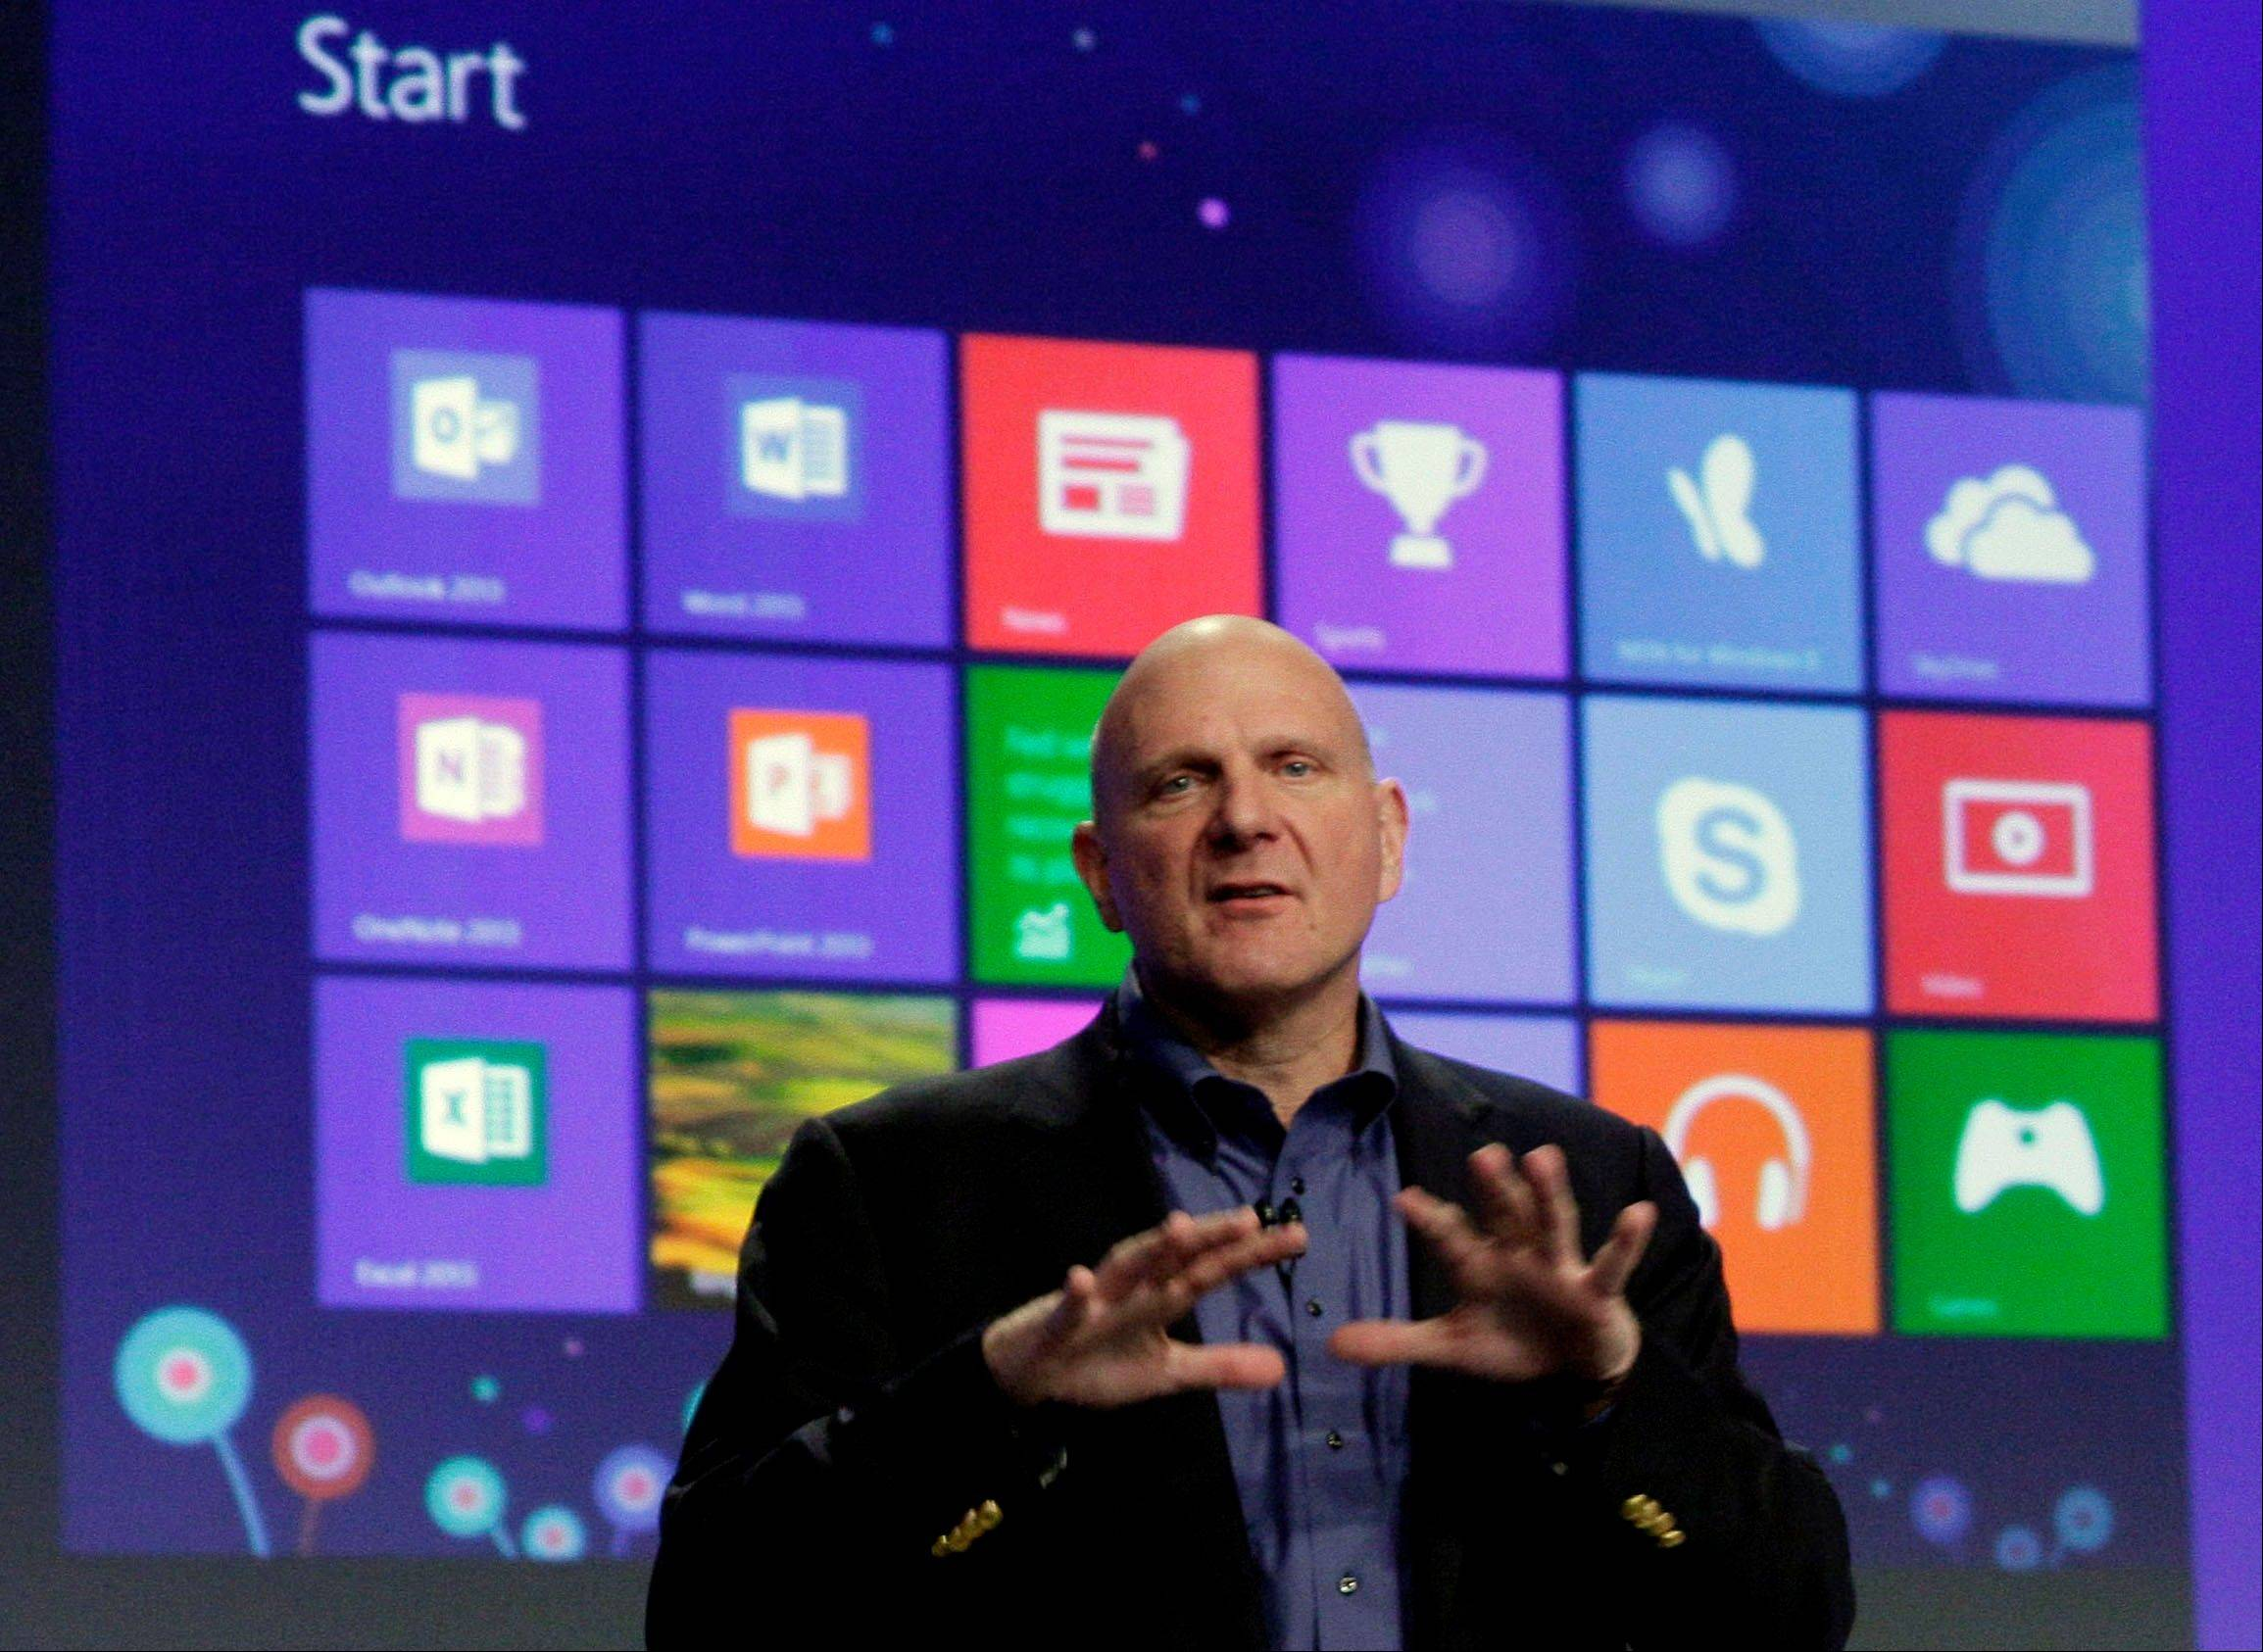 In this Oct. 25, 2012 photo Microsoft CEO Steve Ballmer gives his presentation at the launch of Microsoft Windows 8, in New York. Ballmer is kicking off an international promotional tour on Monday, Nov. 5, 2012 for the new Windows 8 operating system in Israel.